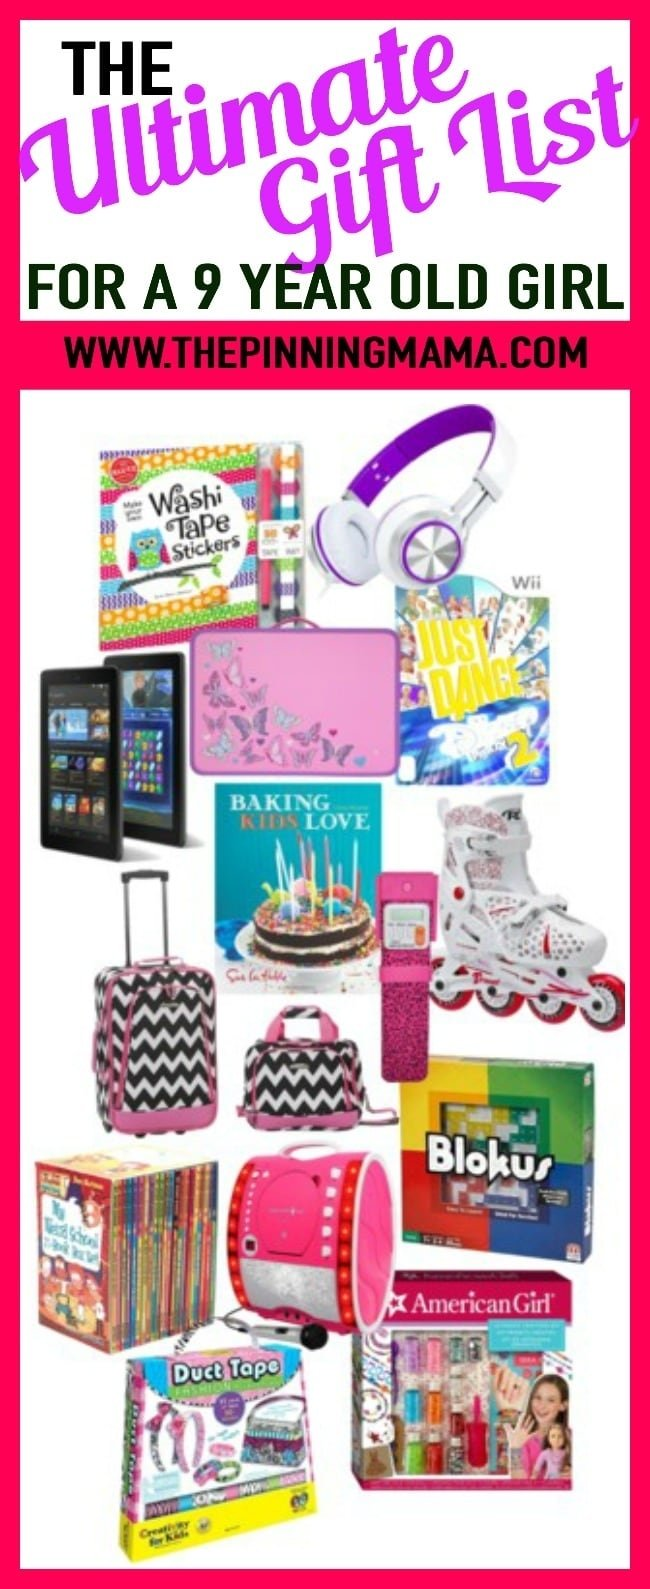 10 Unique Gift Ideas For 9 Year Old Girl the ultimate gift list for a 9 year old girl e280a2 the pinning mama 4